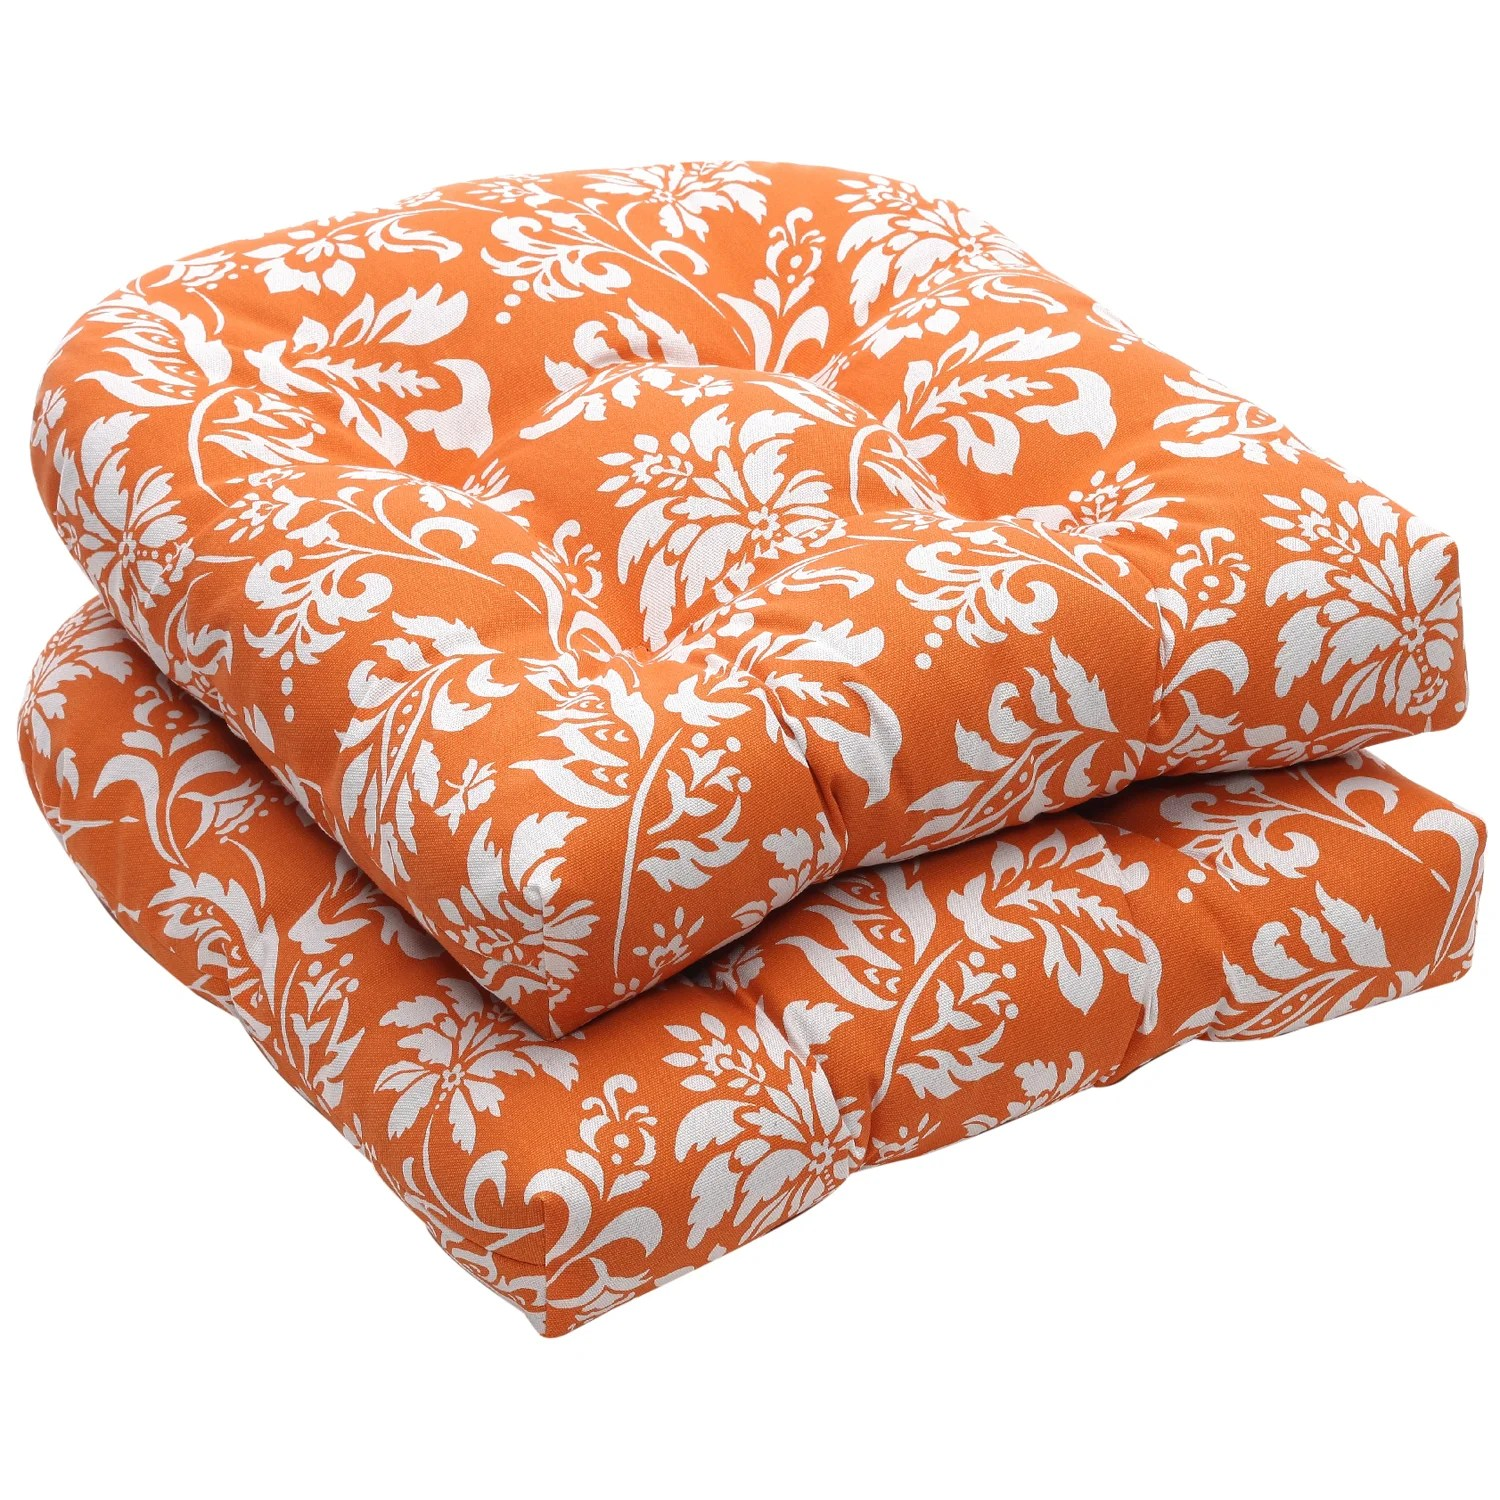 orange wicker chair cushions chairs that fold out into beds pillow perfect outdoor floral white seat